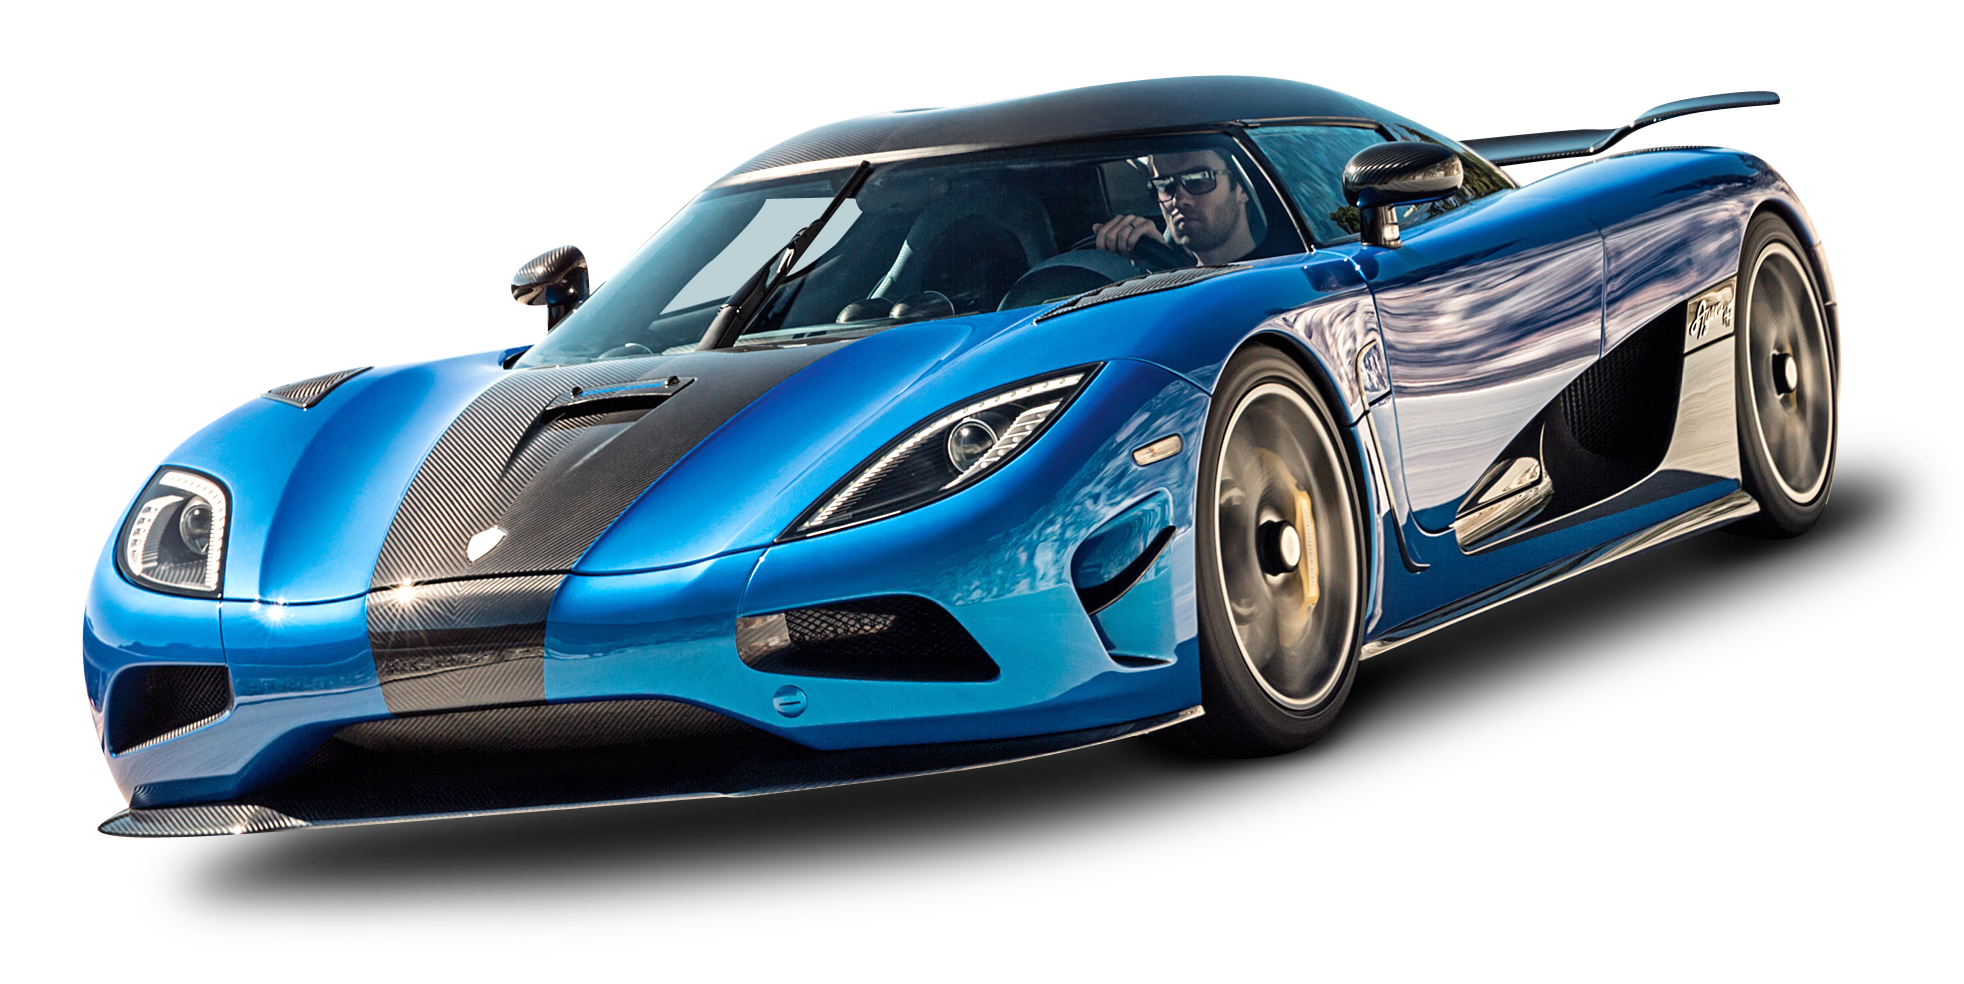 Koenigsegg Agera Png - Download Koenigsegg Agera Blue Car PNG Image for Free